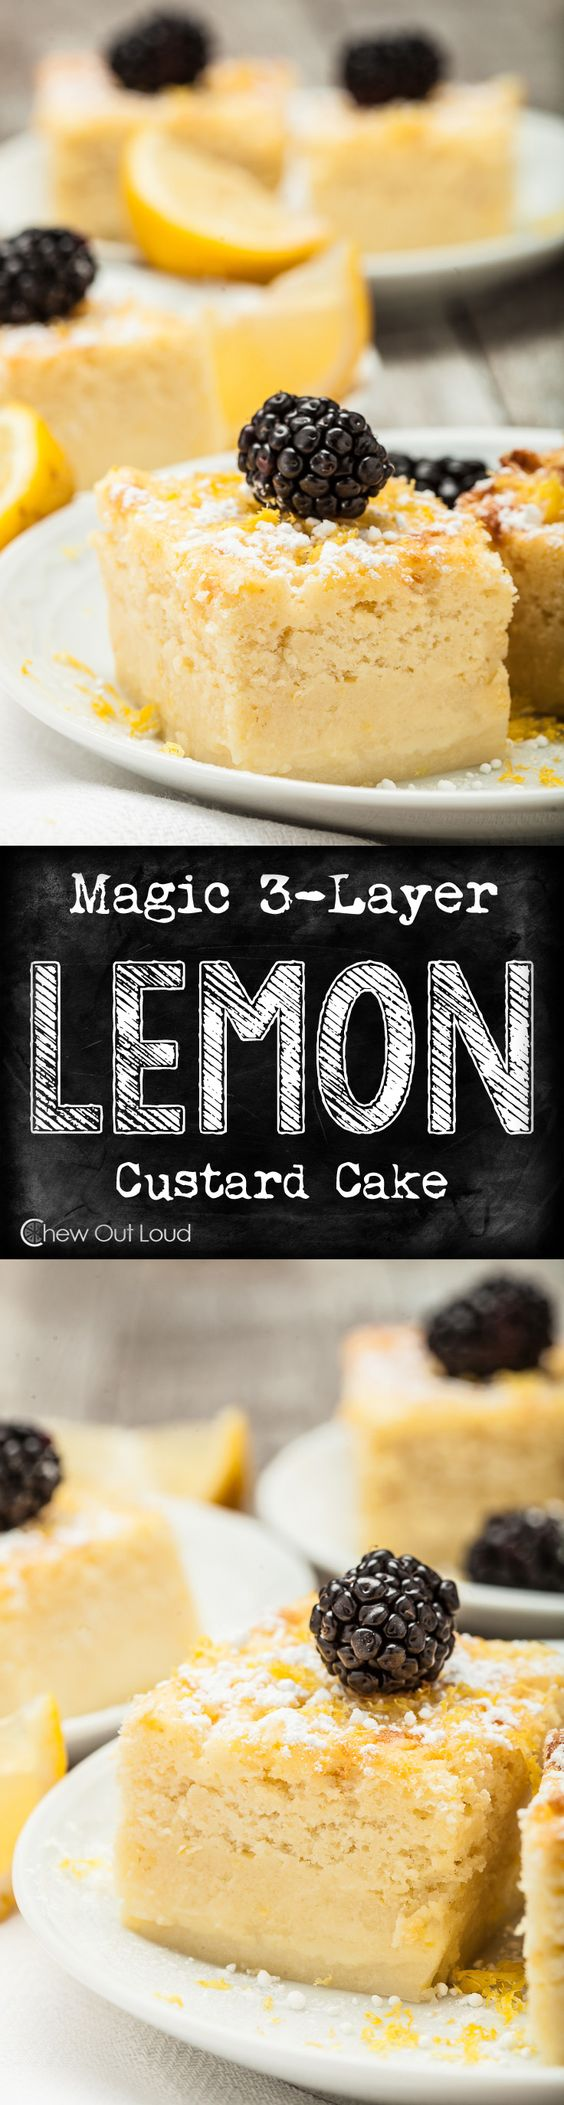 Magic 3-Layer Lemon Custard Cake Recipe via Chew Out Loud - This was truly special! One batter => 3 yummy layers! Sponge cake, custard, and lemony goodness. The BEST Easy Lemon Desserts and Treats Recipes - Perfect For Easter, Mother's Day Brunch, Bridal or Baby Showers and Pretty Spring and Summer Holiday Party Refreshments! #lemondesserts #lemonrecipes #easylemonrecipes #lemon #lemontreats #easterdesserts #mothersdaydesserts #springdesserts #holidaydesserts #summerdesserts